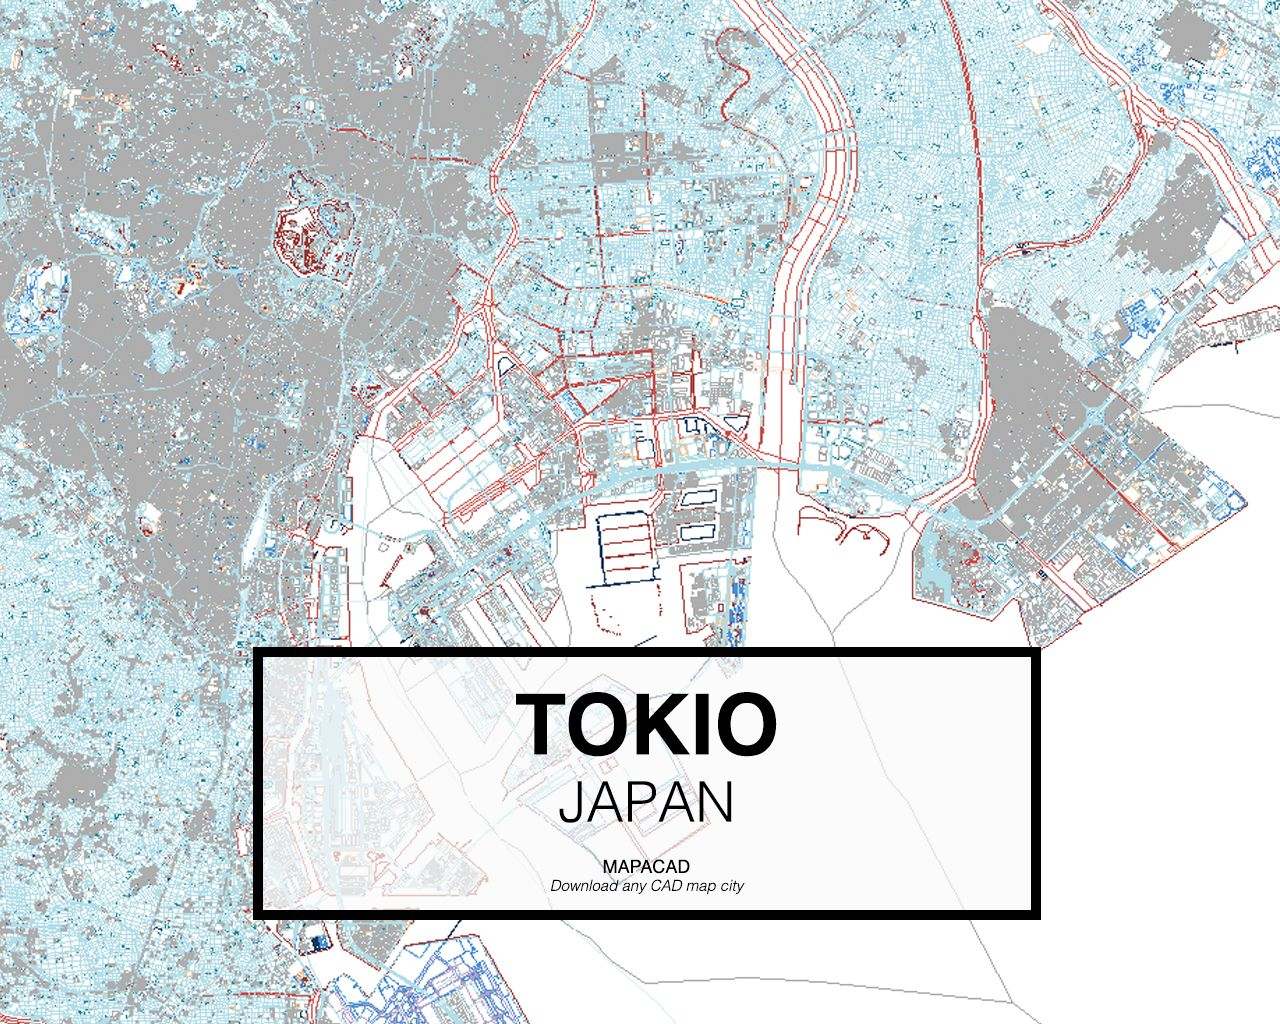 mapa portugal dwg Tokio   Japan. Download CAD Map city in dwg ready to use in  mapa portugal dwg